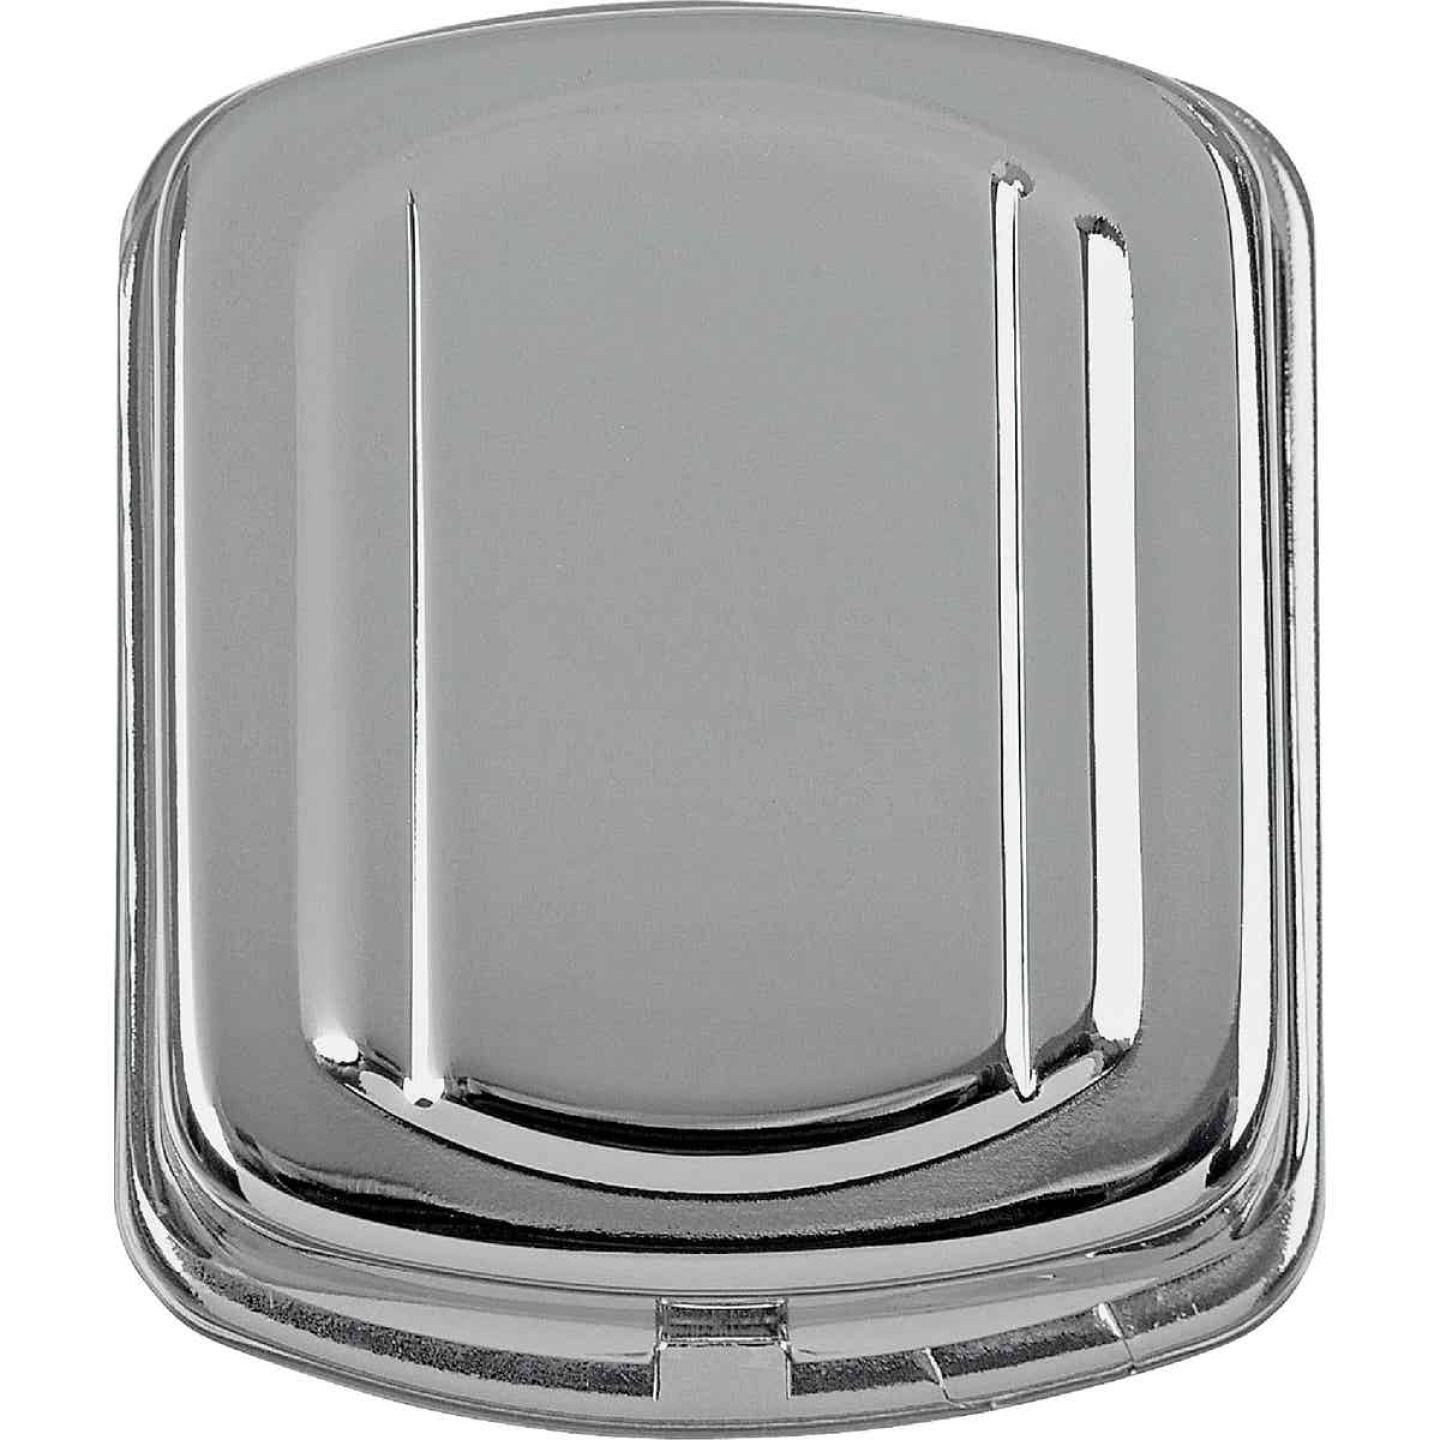 IQ America Wired Door Buzzer Image 1